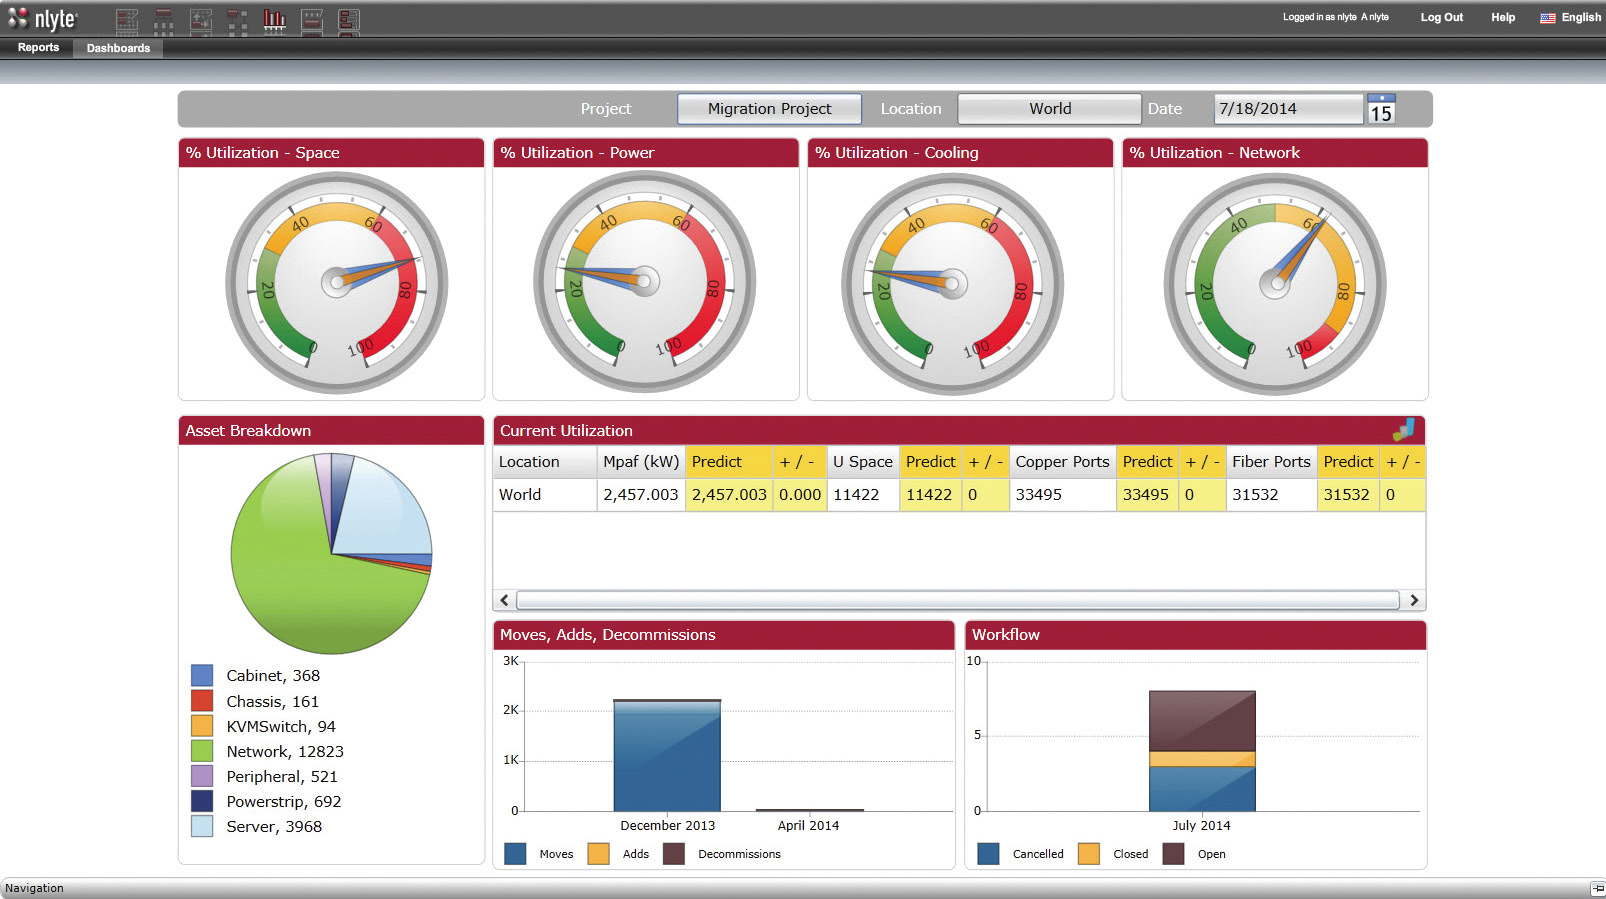 Nlyte Capacity Dashboard